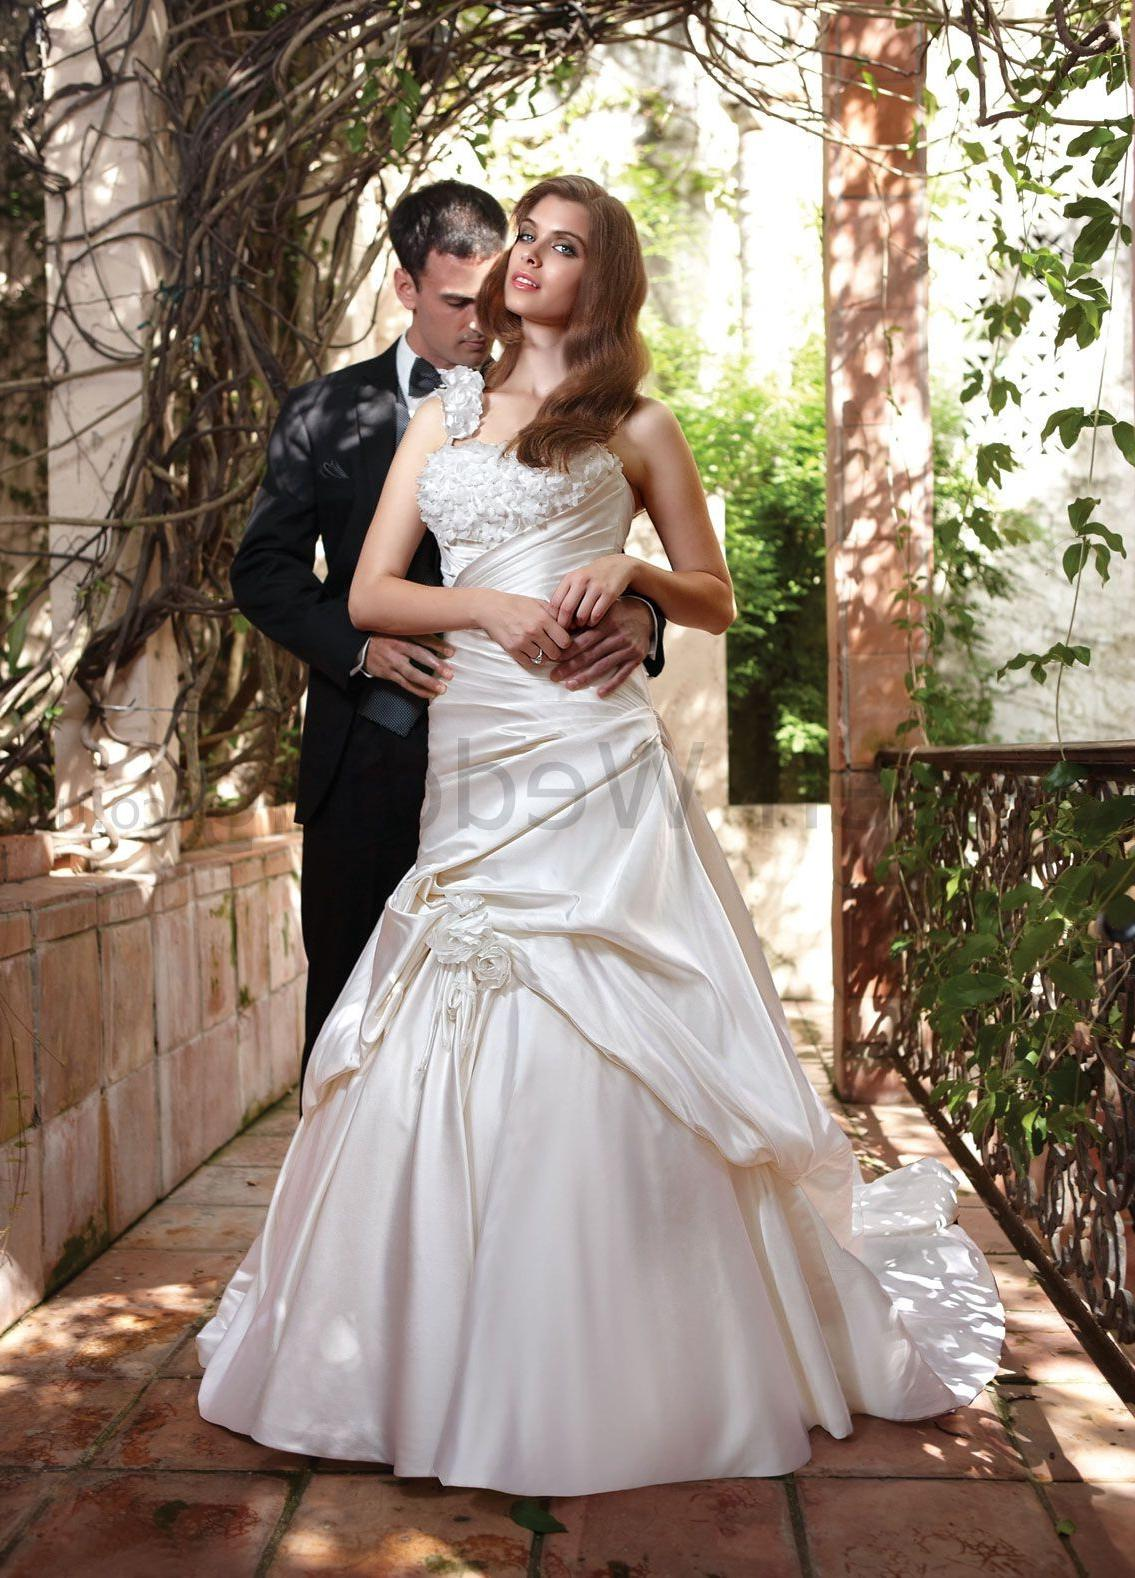 Tips for a happy wedding